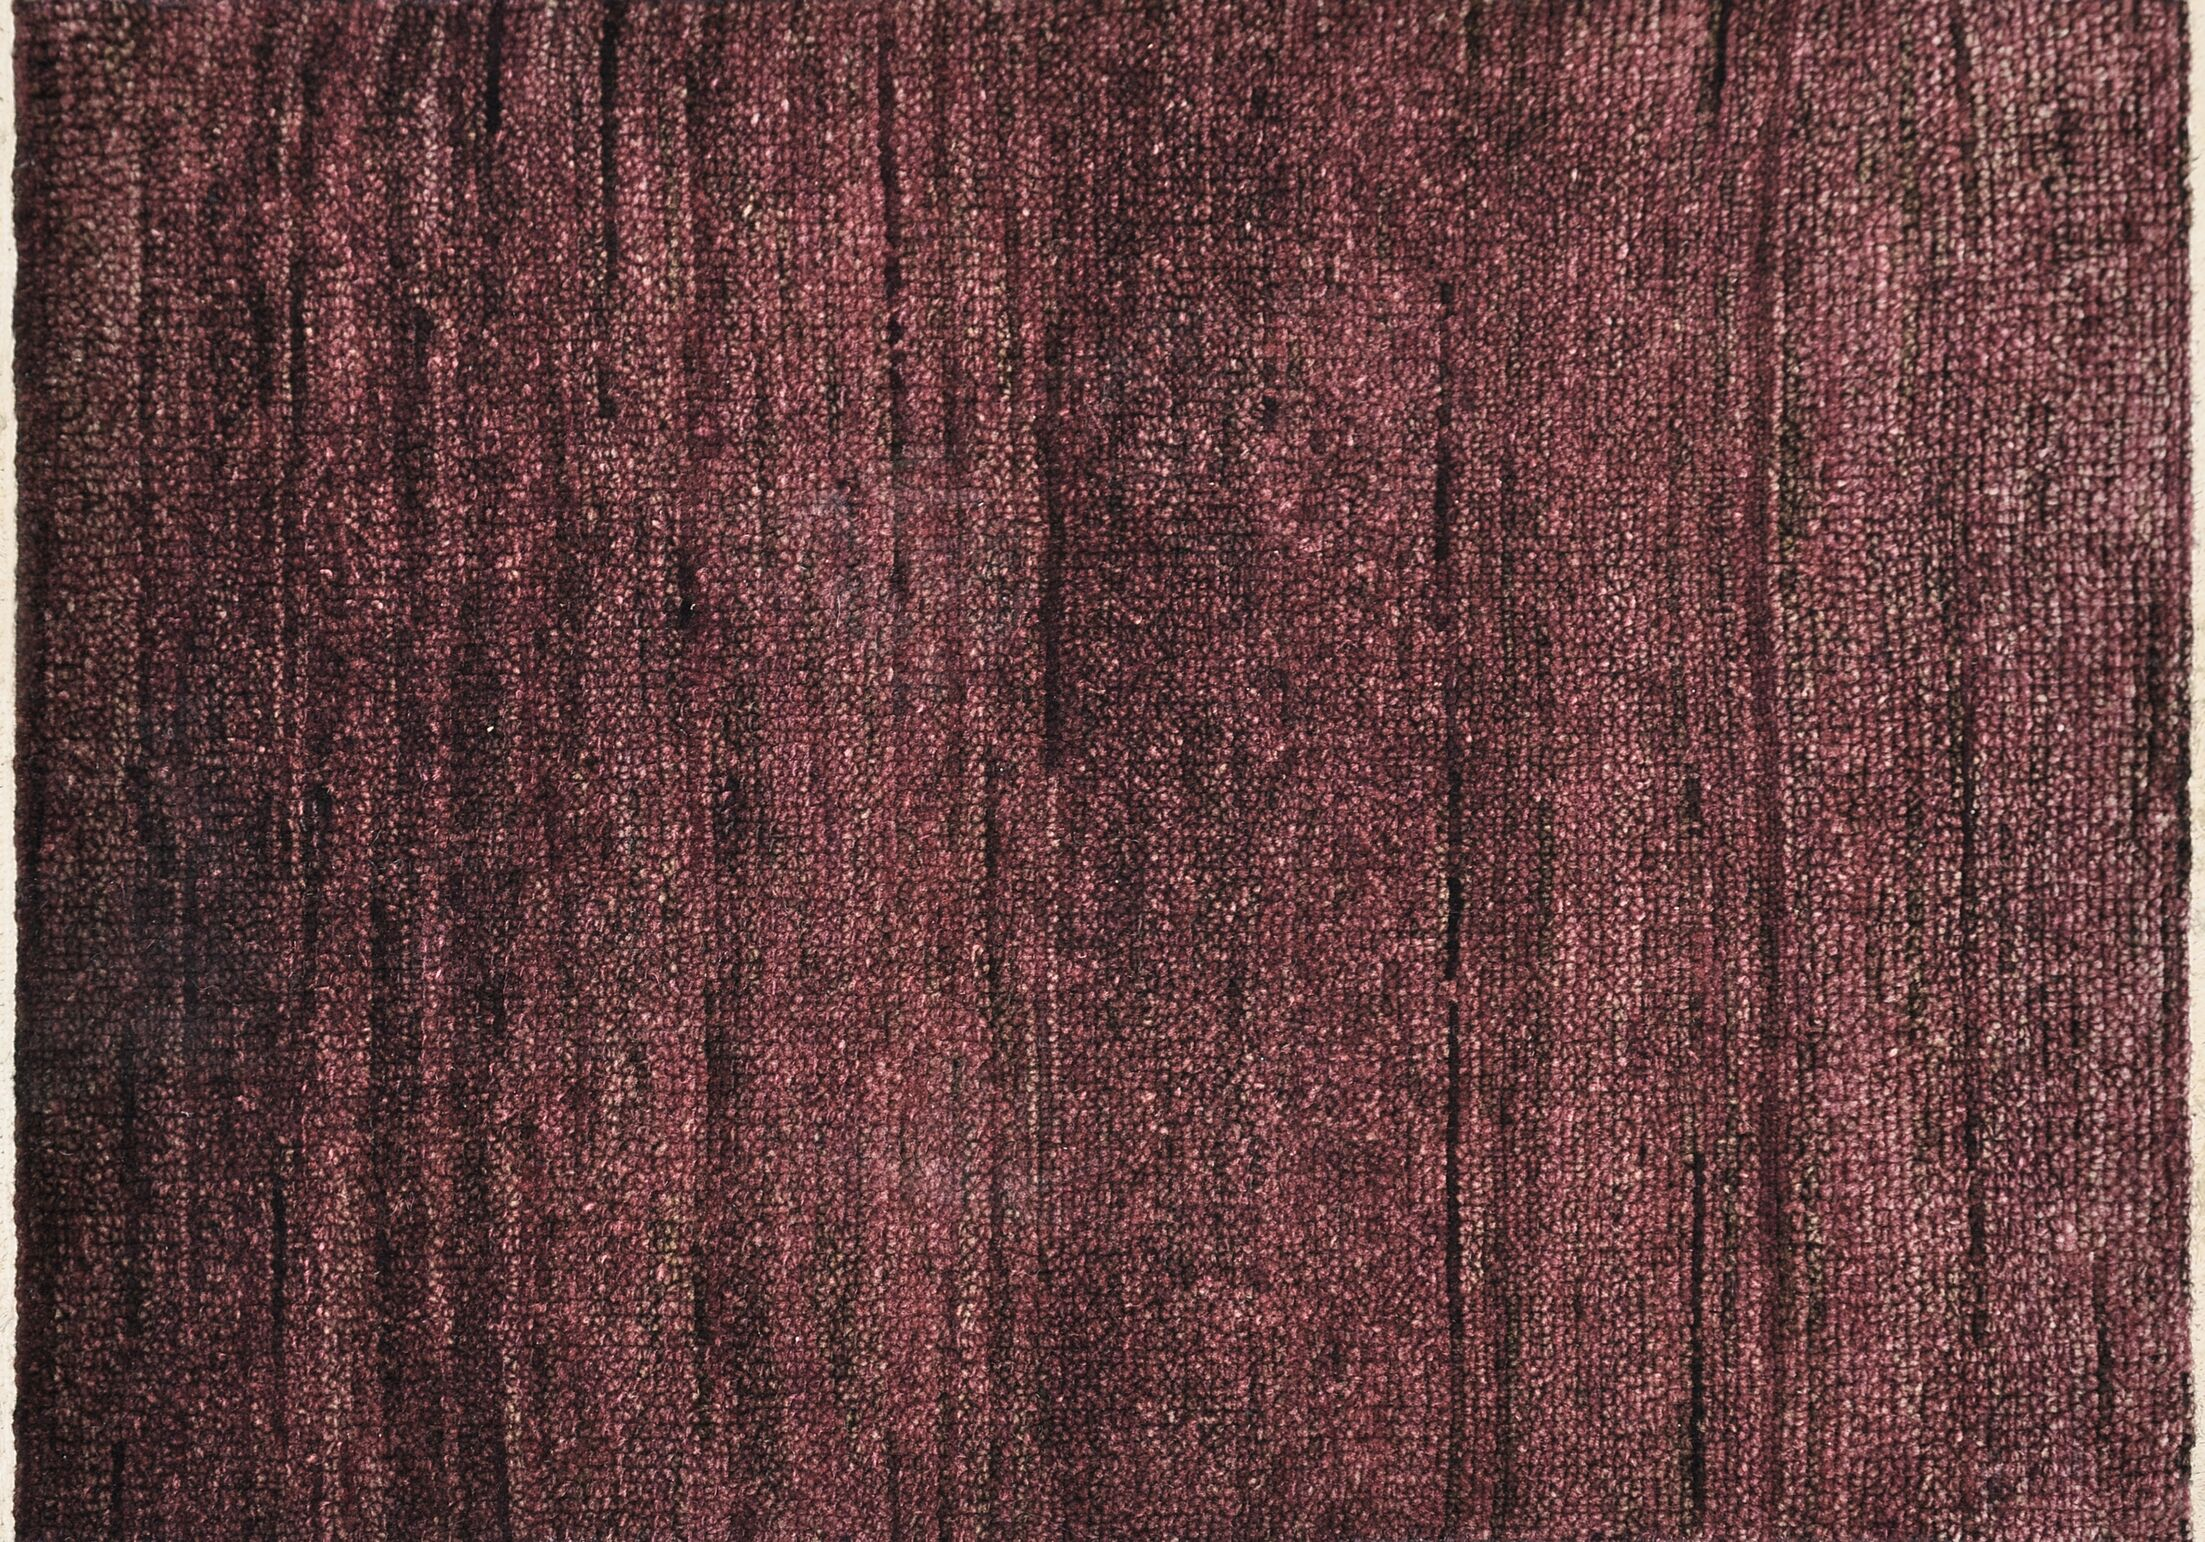 Clearman Hand-Knotted Plum Area Rug Rug Size: Rectangle 8'6